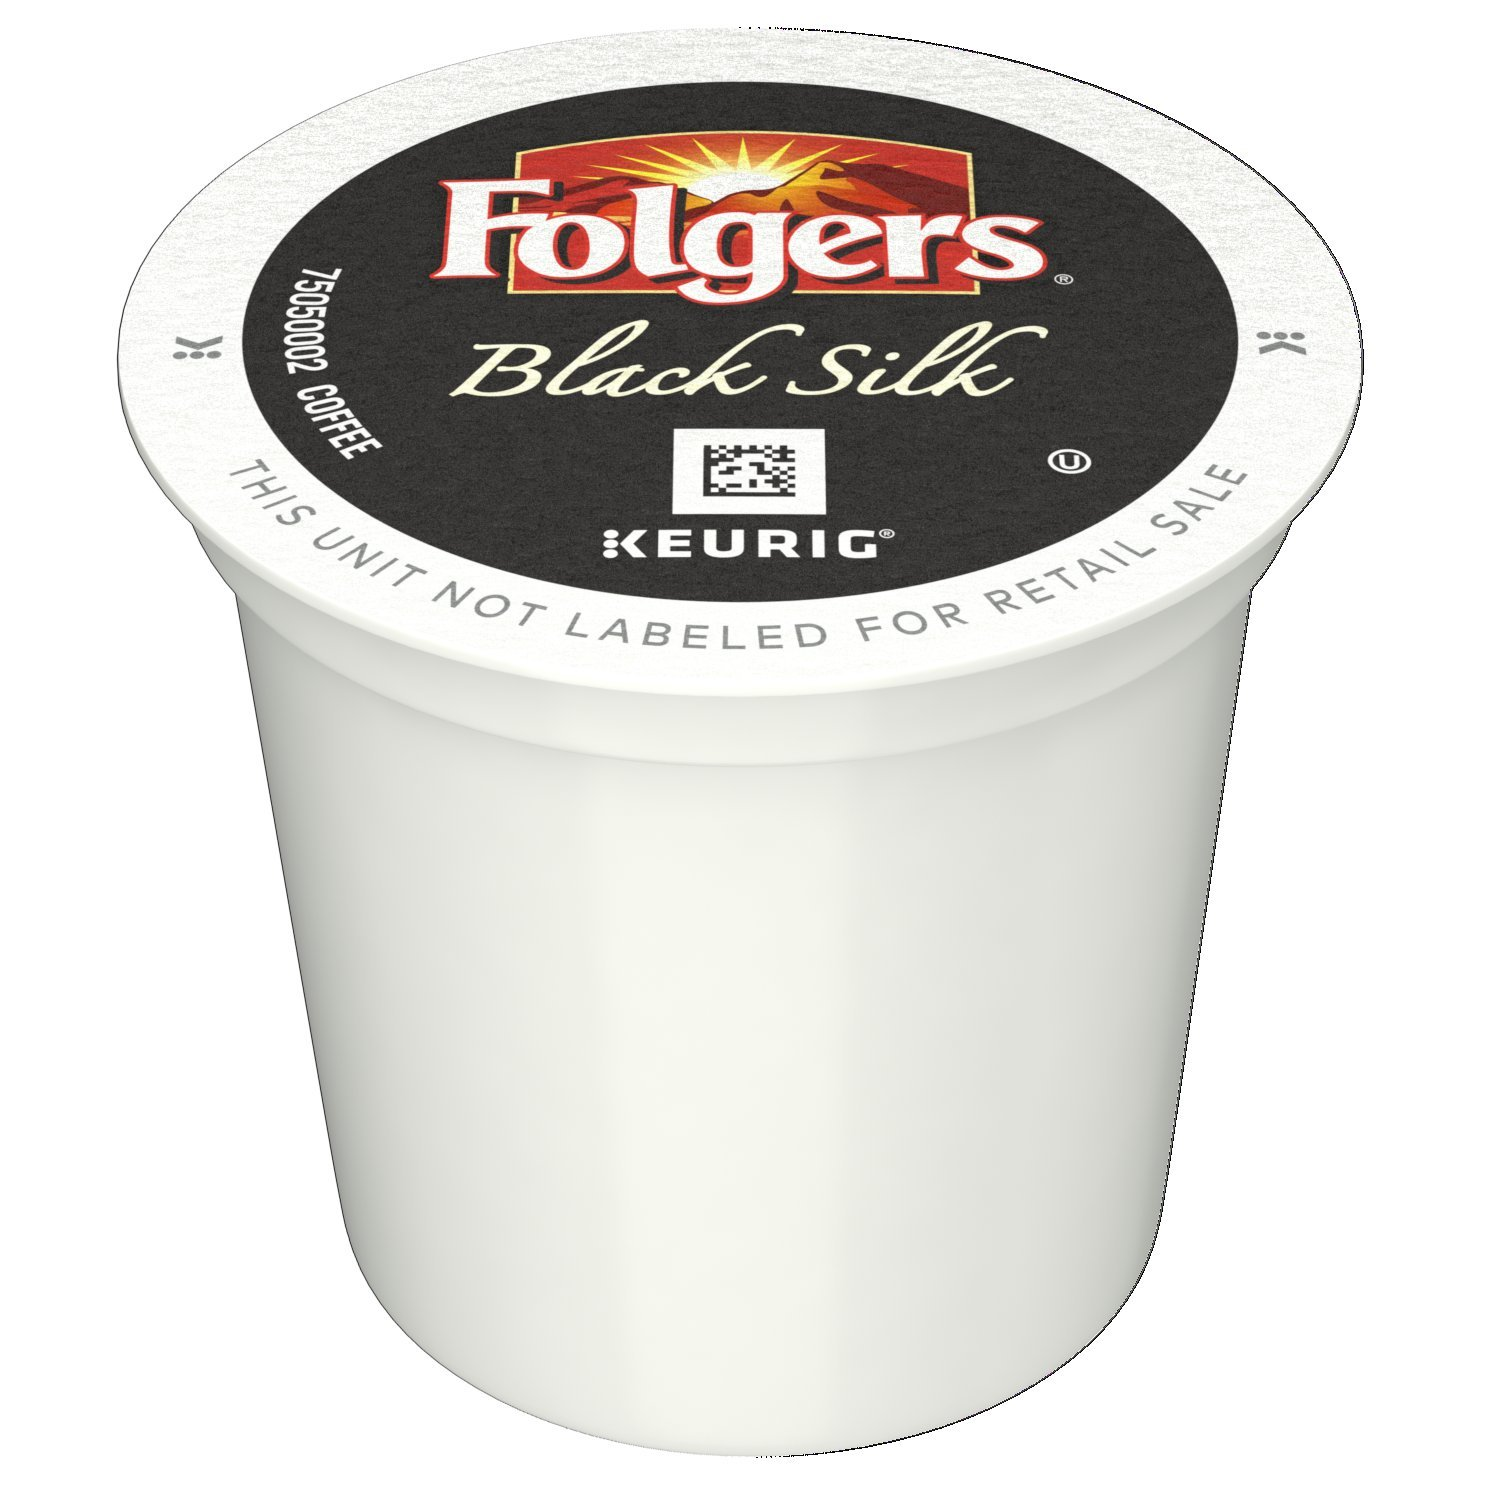 Folgers Black Silk Coffee, Dark Roast, K-Cup Pods for Keurig K-Cup Brewers, 12-Count (Pack of 6) by Folgers (Image #1)